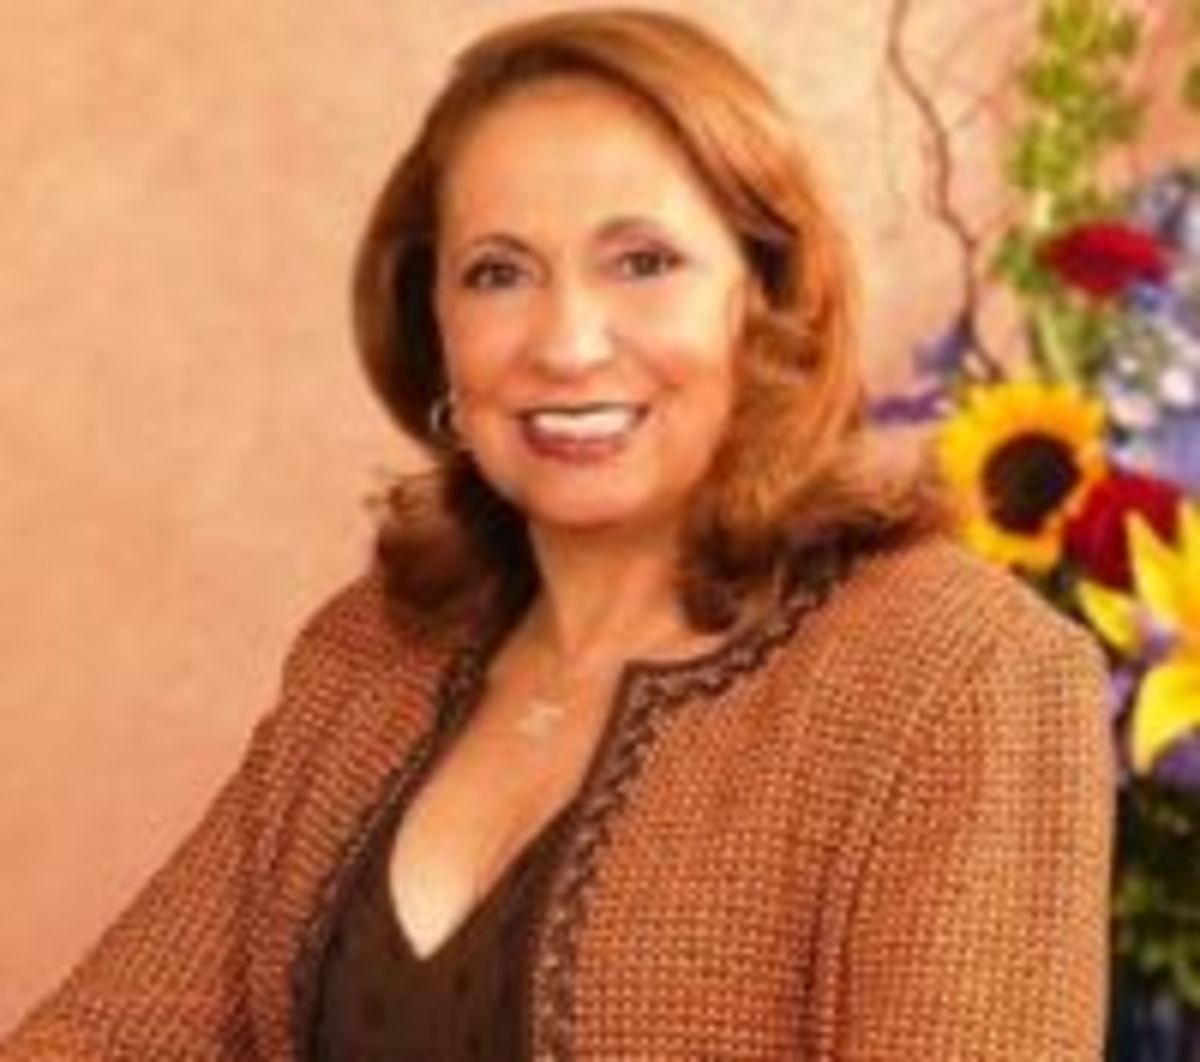 Cathy Hughes (1947-), Entrepreneur, radio and television personality and business executive